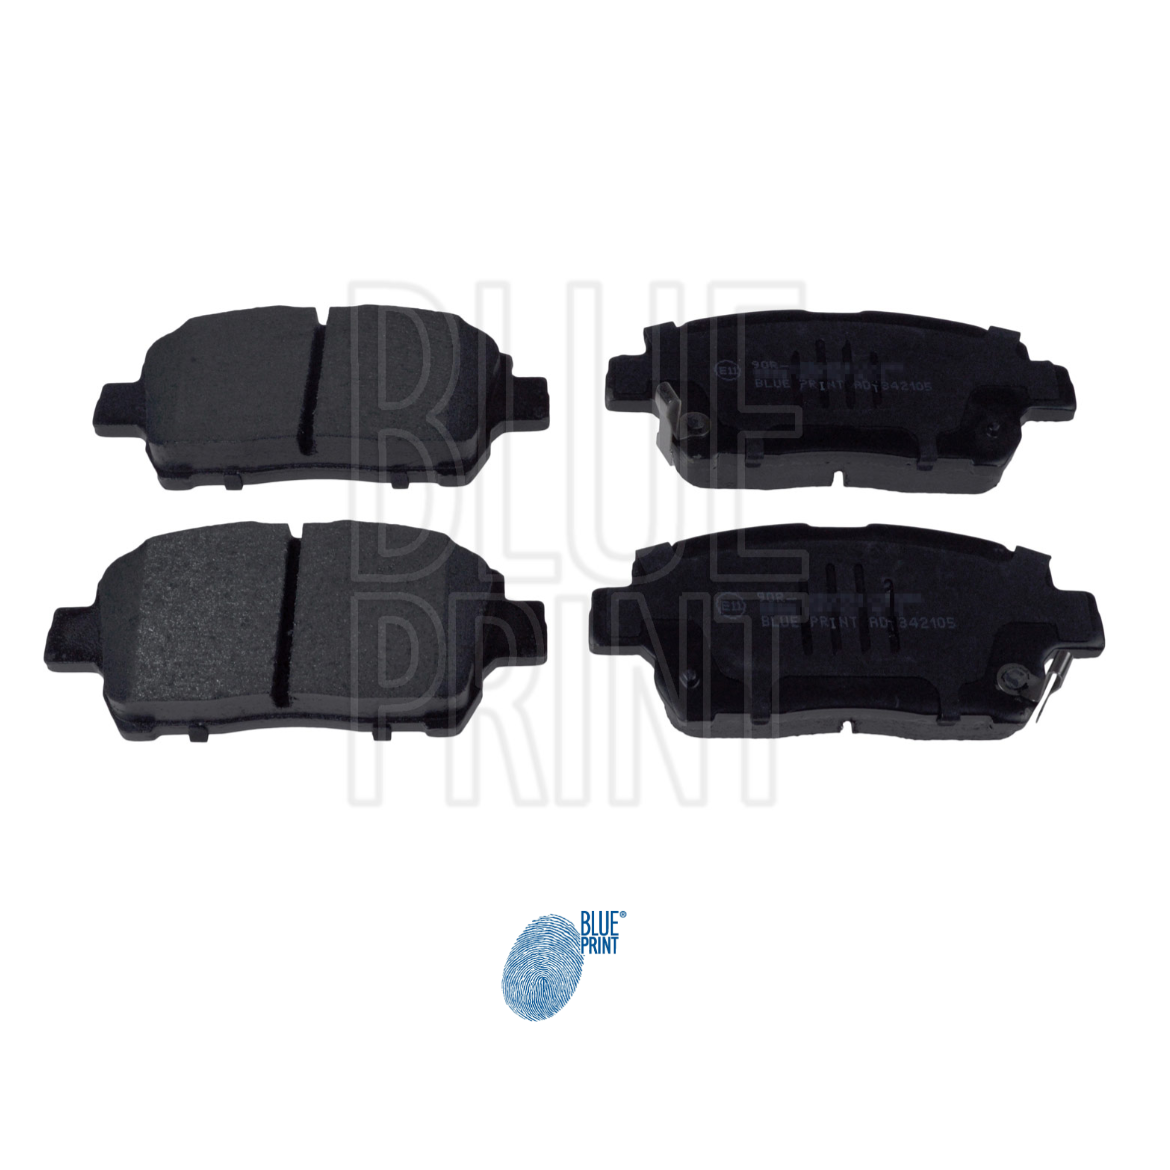 FRONT BRAKE PADS SERIES KIT TOYOTA COROLLA - YARIS BLUEPRINT ADT342105